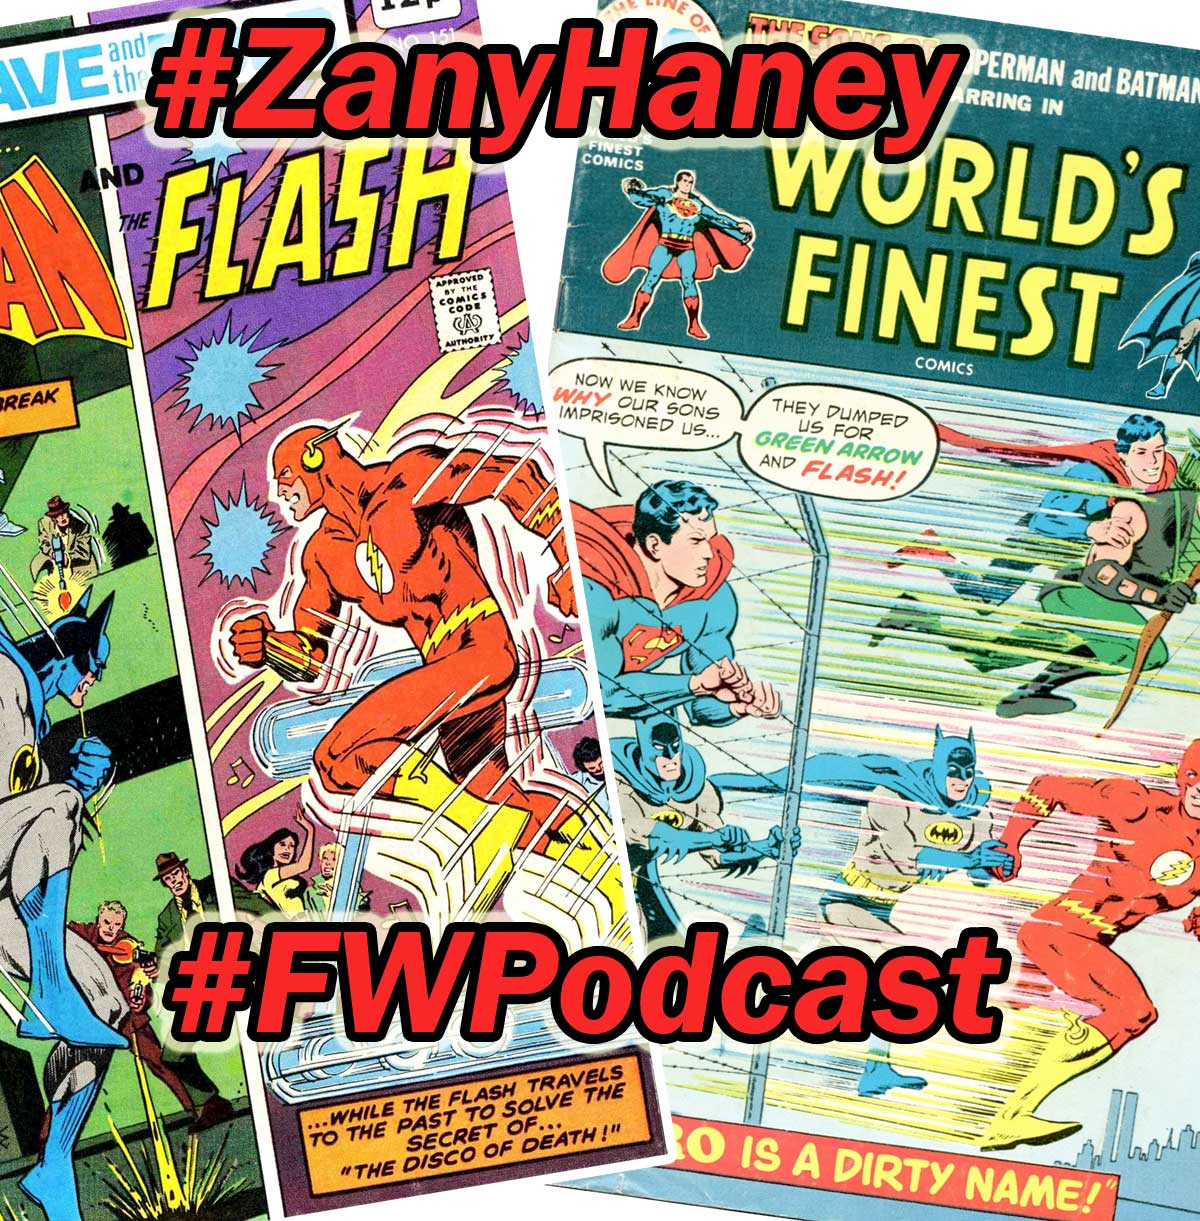 Fire and Water Podcast - Bob Haney Showcase - #ZanyHaney